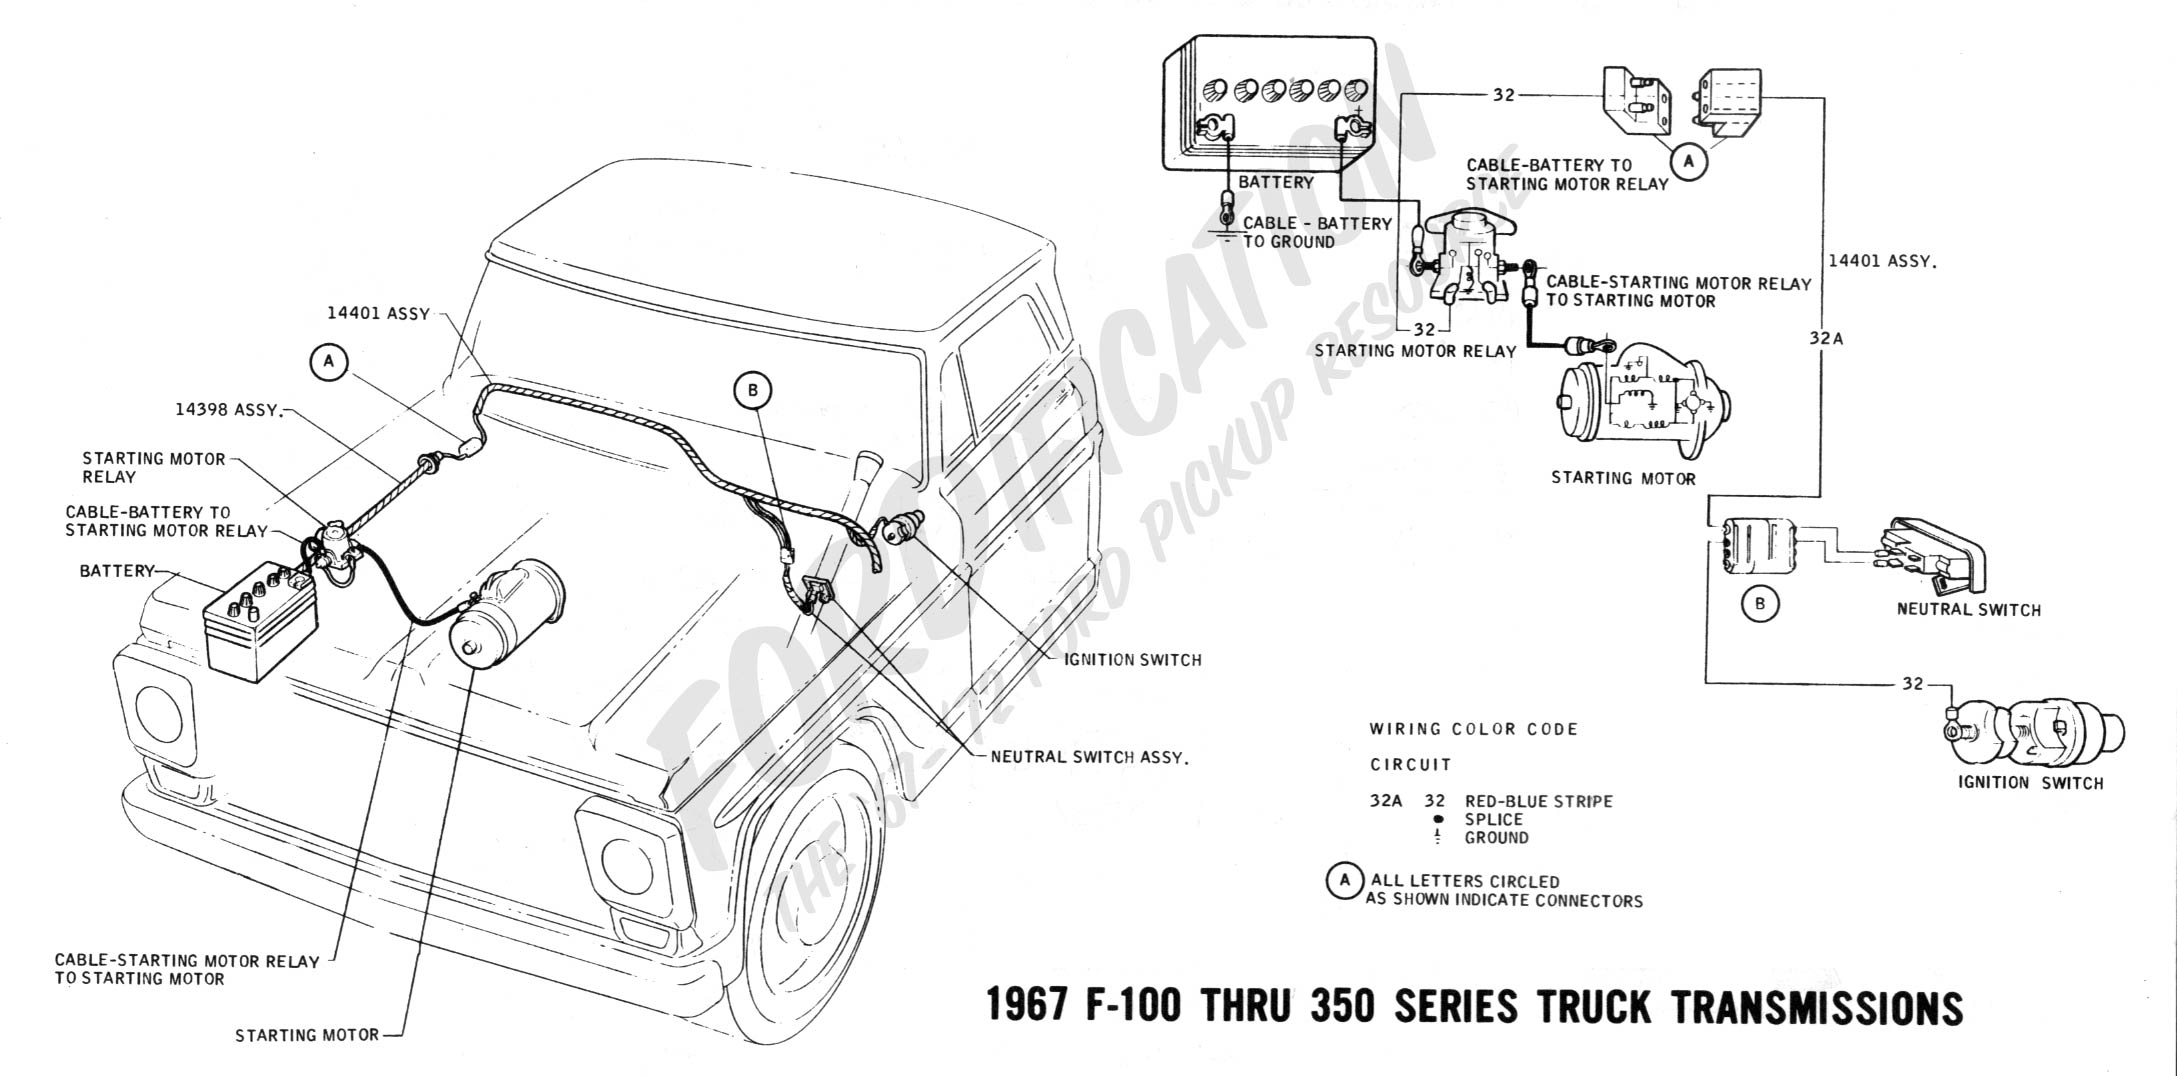 1977 Ford Ignition Wiring Diagram Starting Know About F 250 Truck Technical Drawings And Schematics Section H 1979 F250